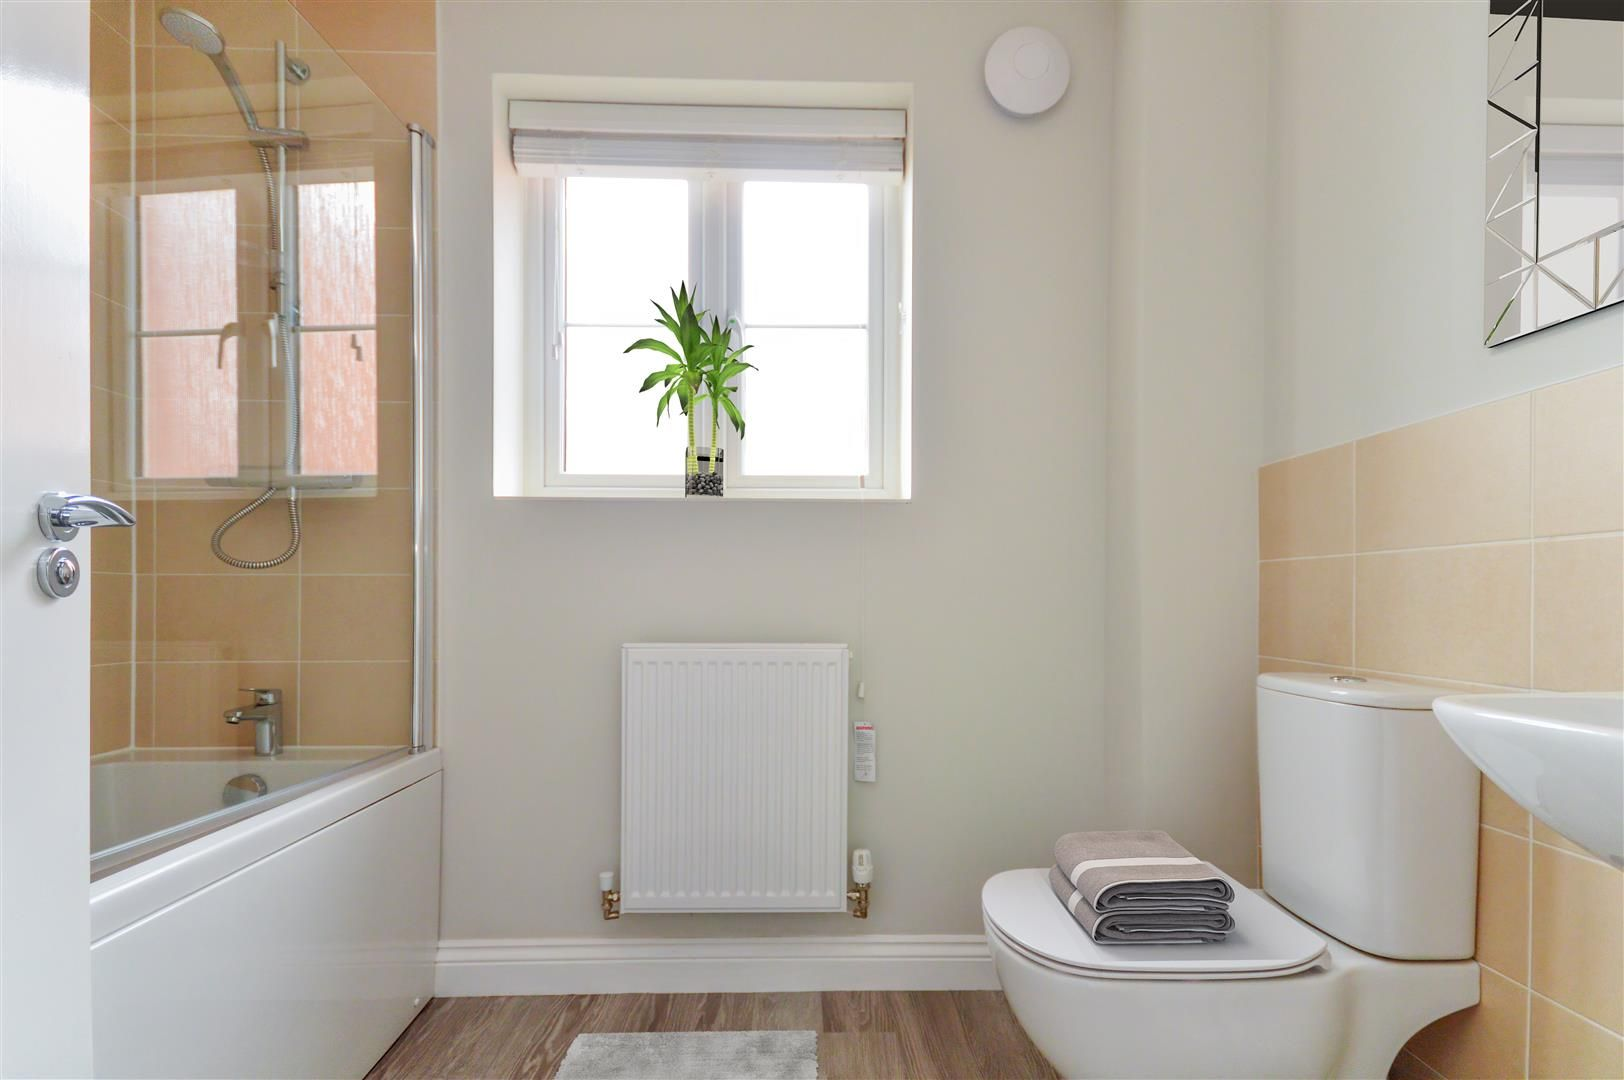 2 bed semi-detached for sale in Kingstone 2